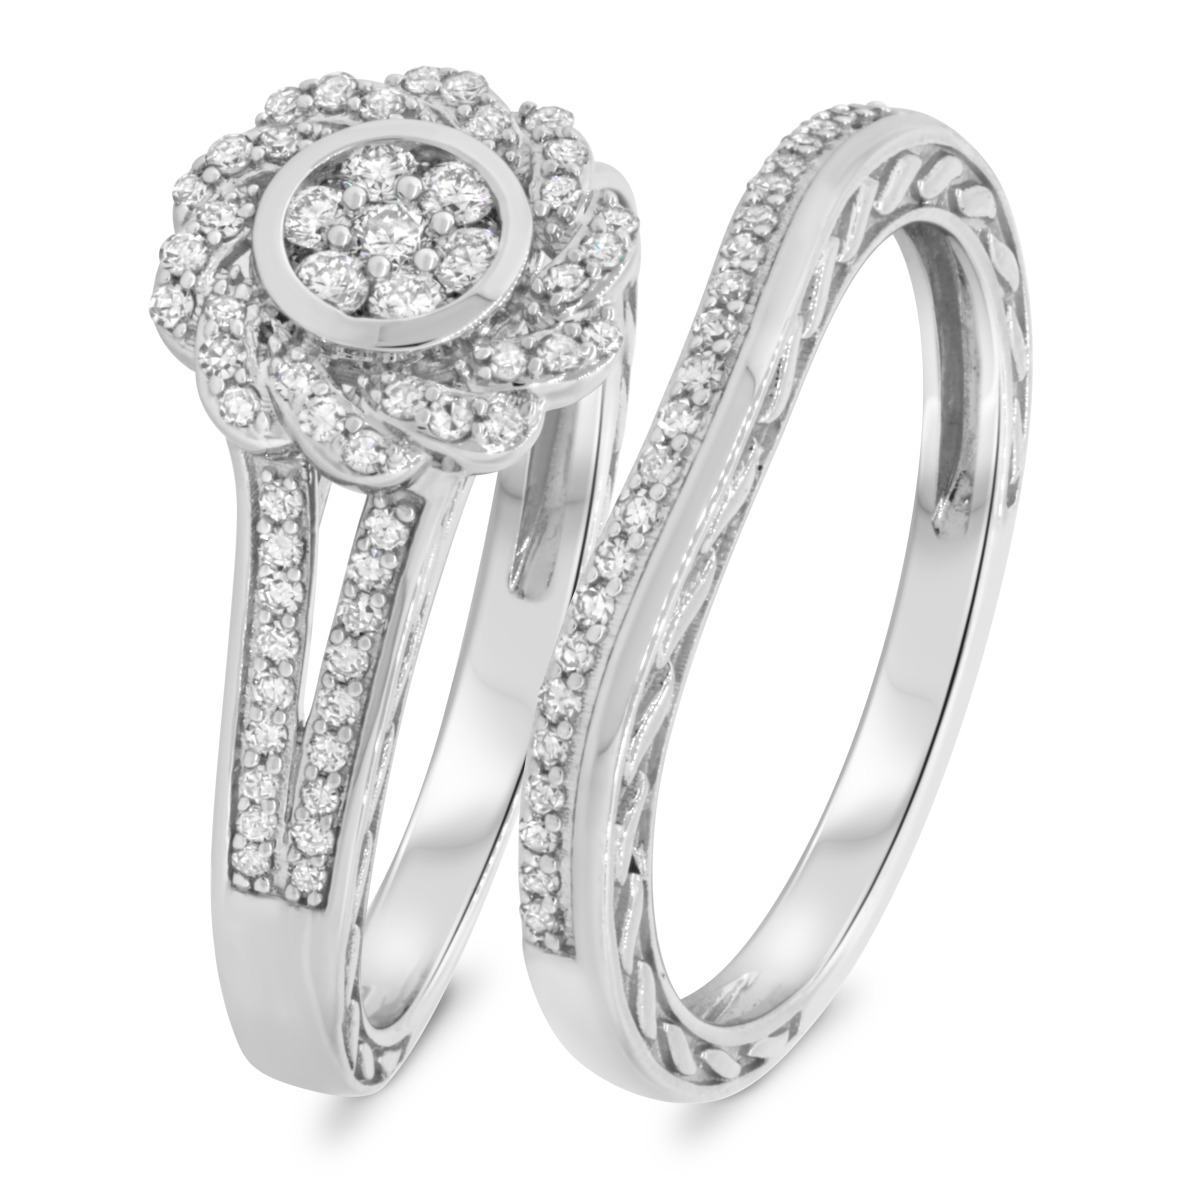 1/2 Carat T.W. Diamond Matching Bridal Ring Set 10K White Gold